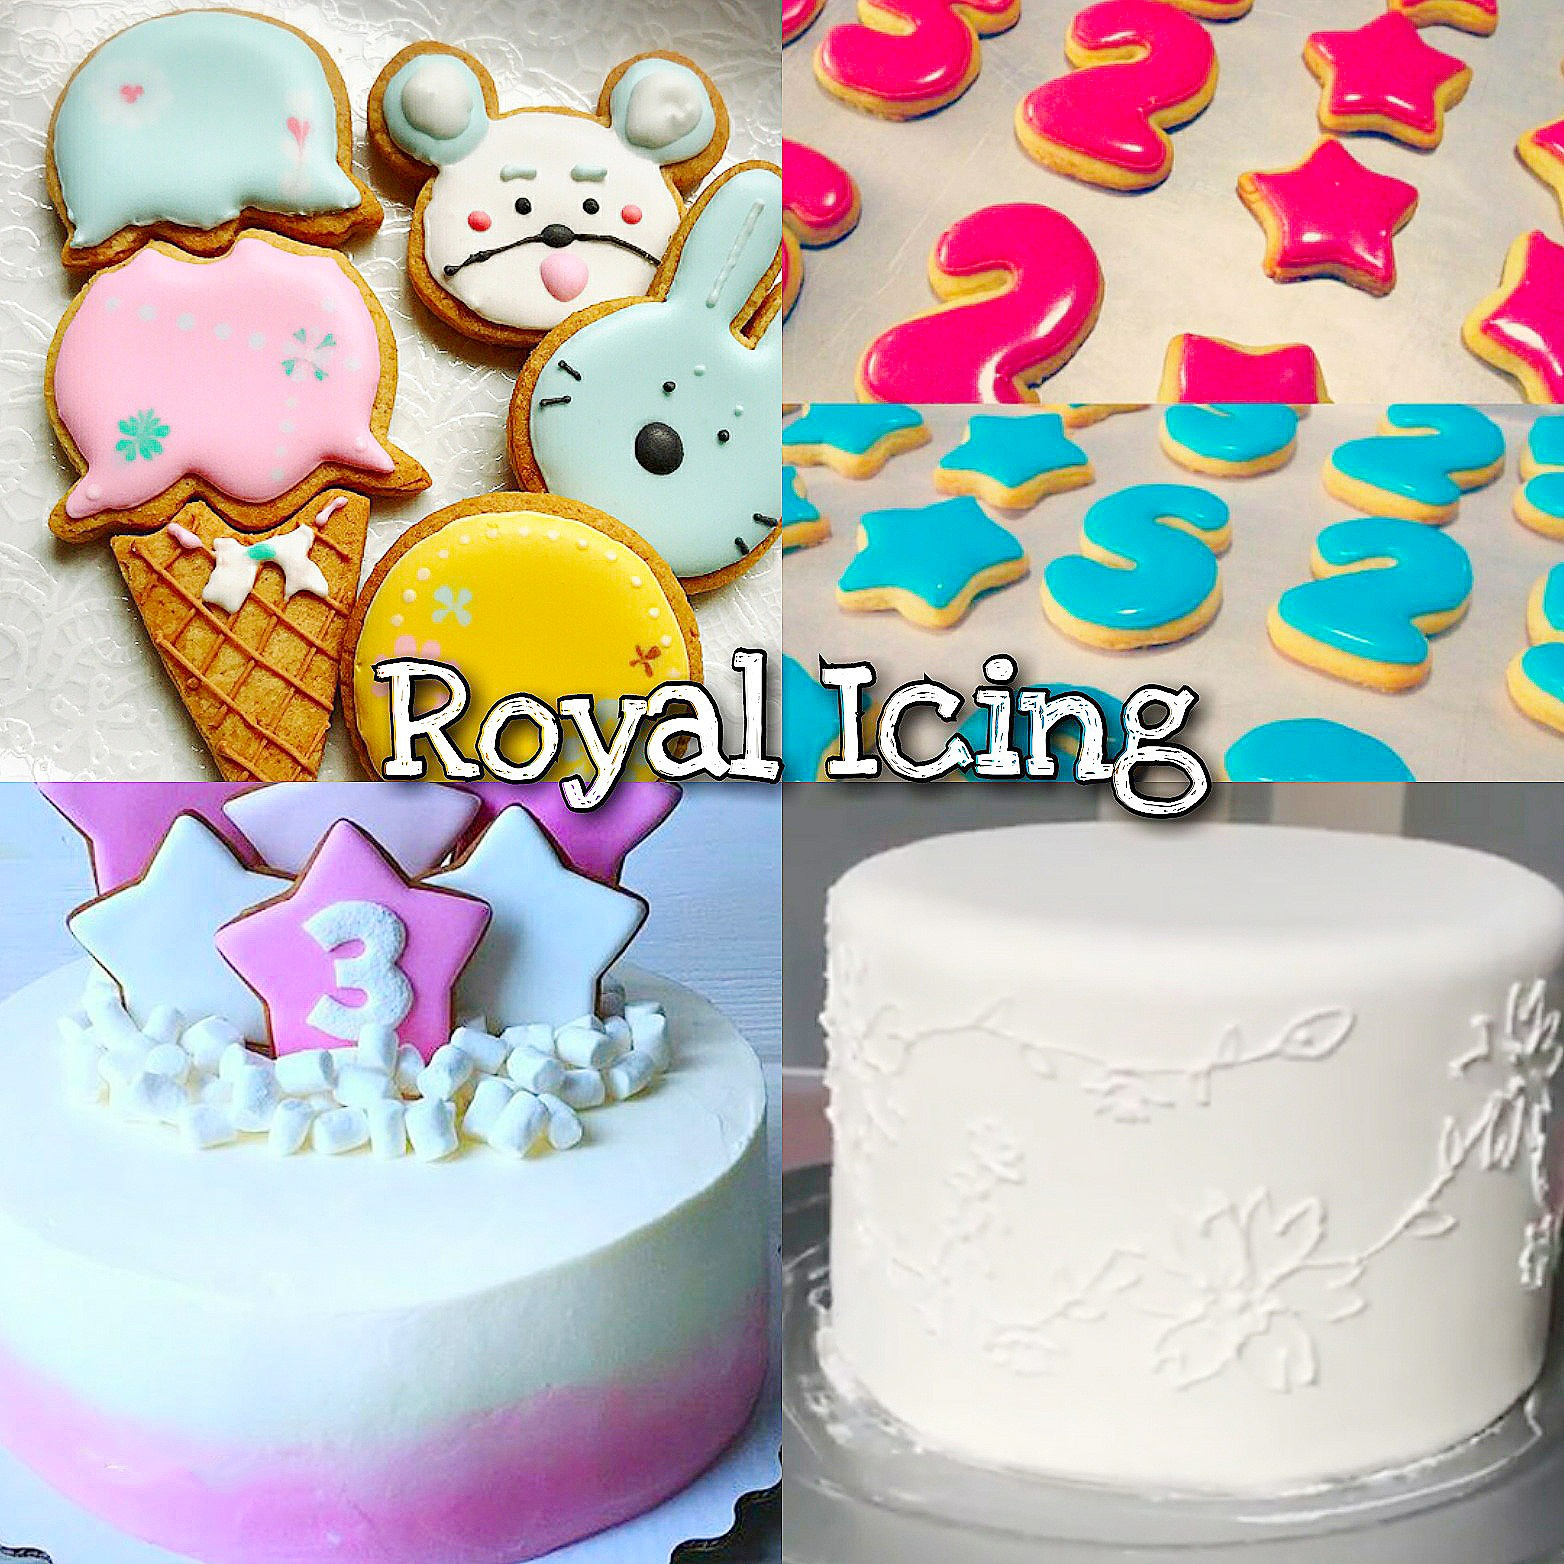 8 Basic Icing Recipes (Beginners Guide)